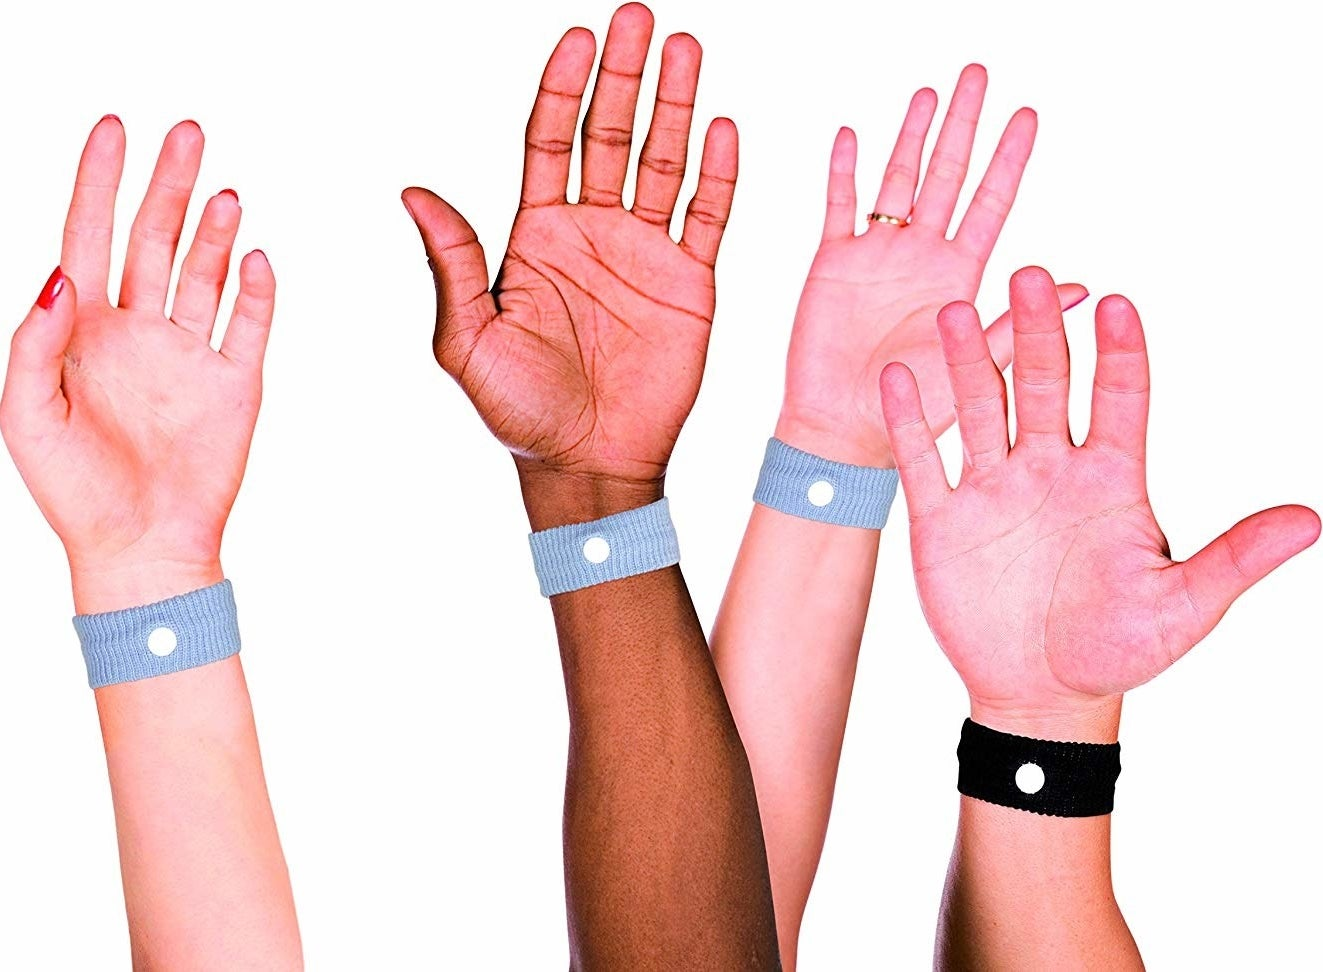 A variety of hands wearing the anti-nausea wristband.